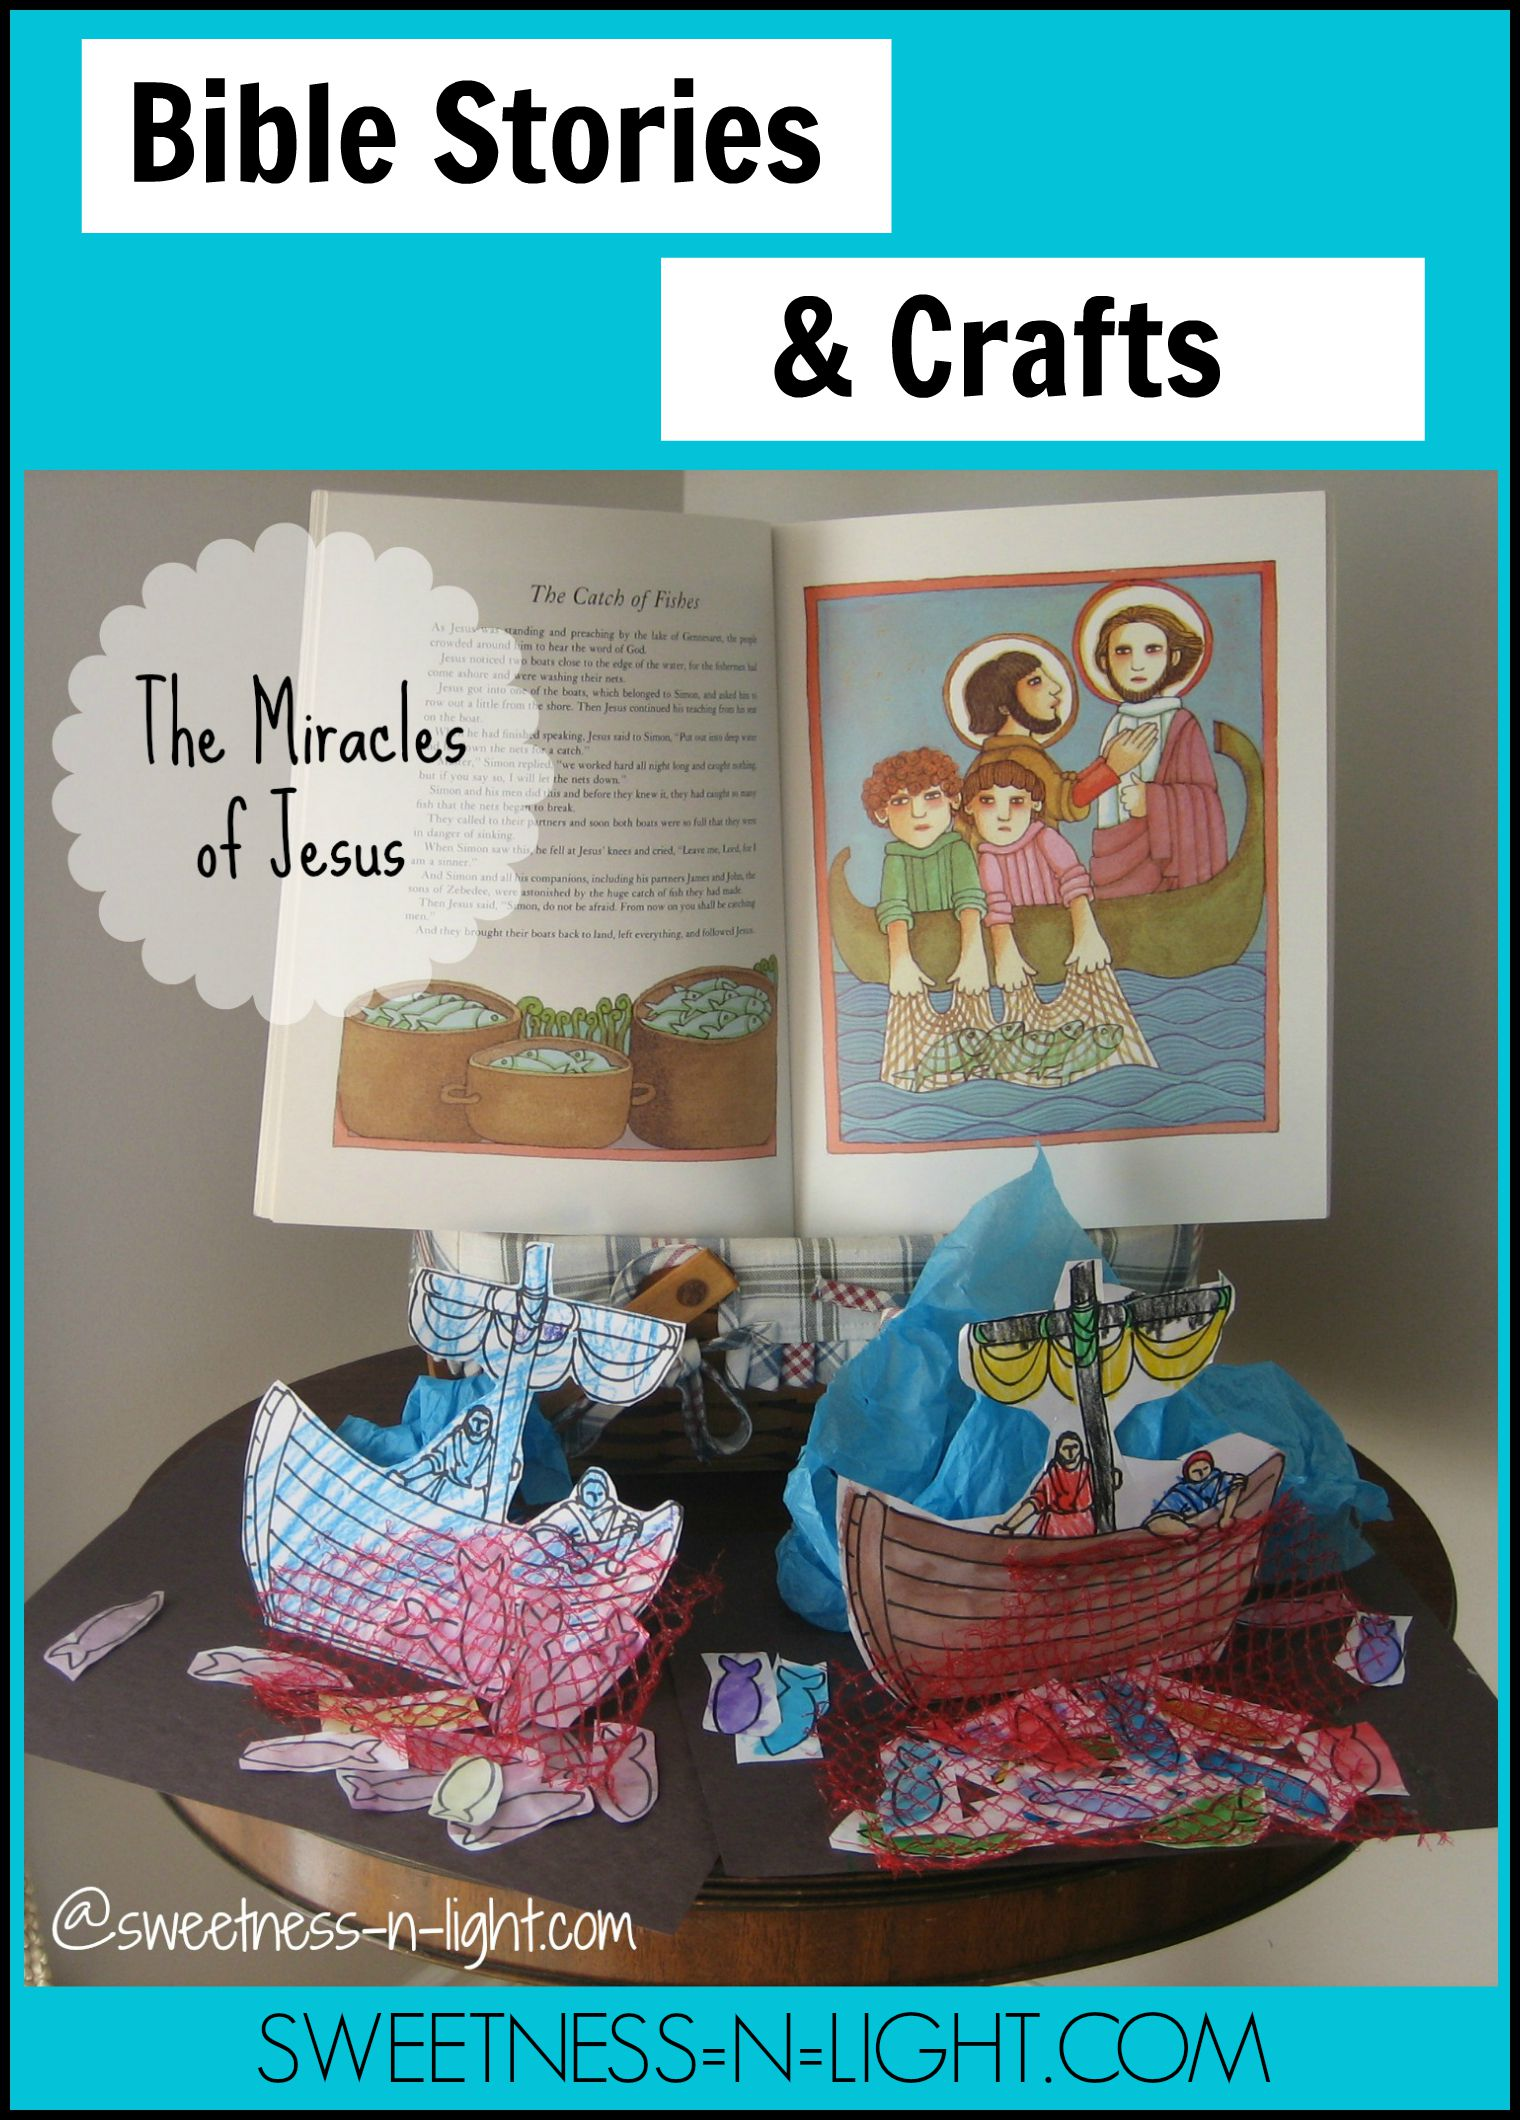 Bible Stories & Crafts